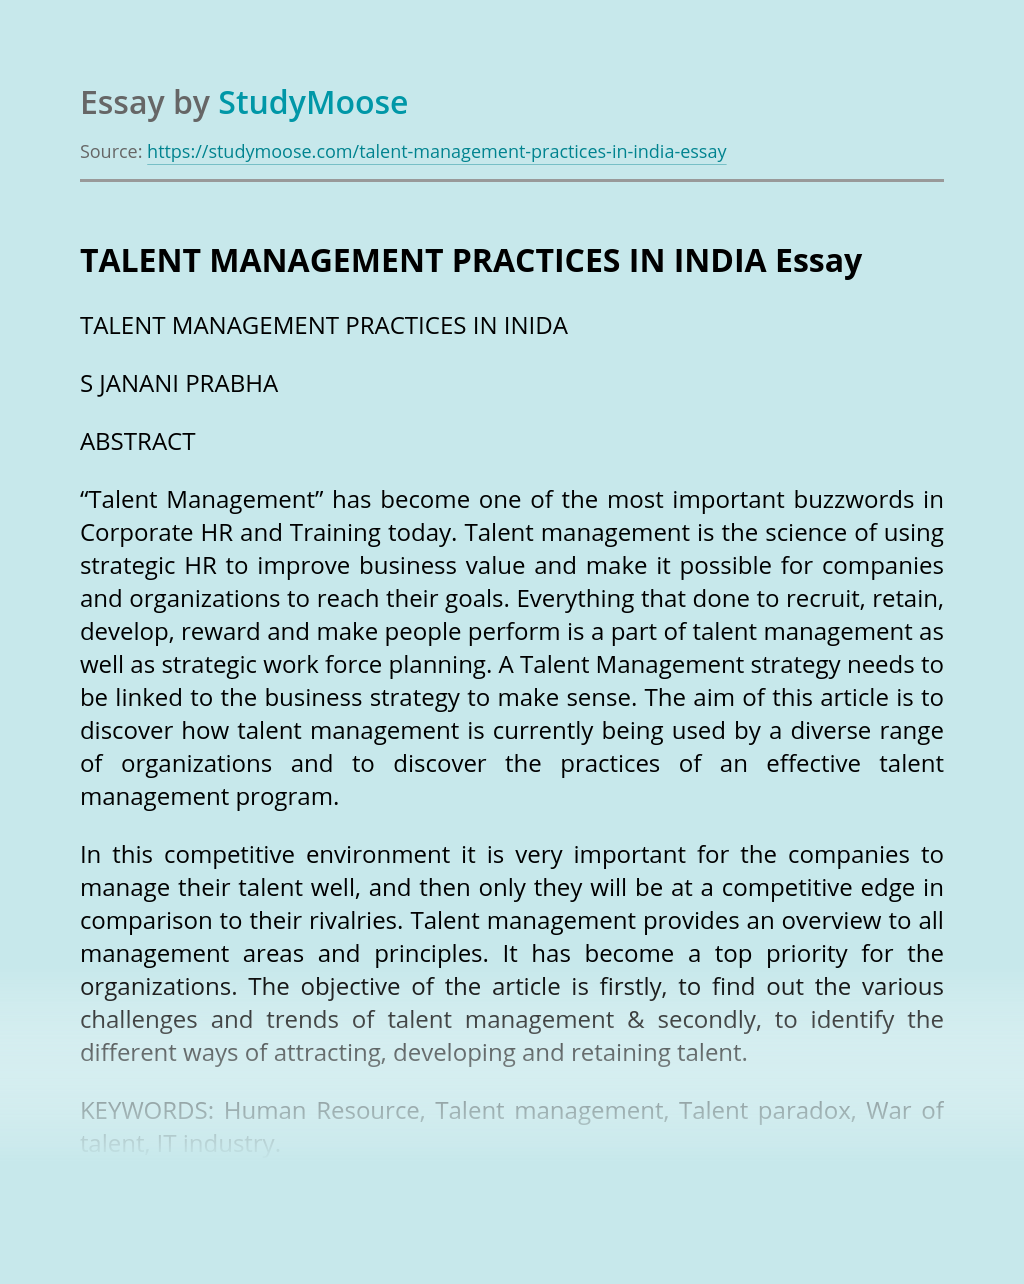 TALENT MANAGEMENT PRACTICES IN INDIA